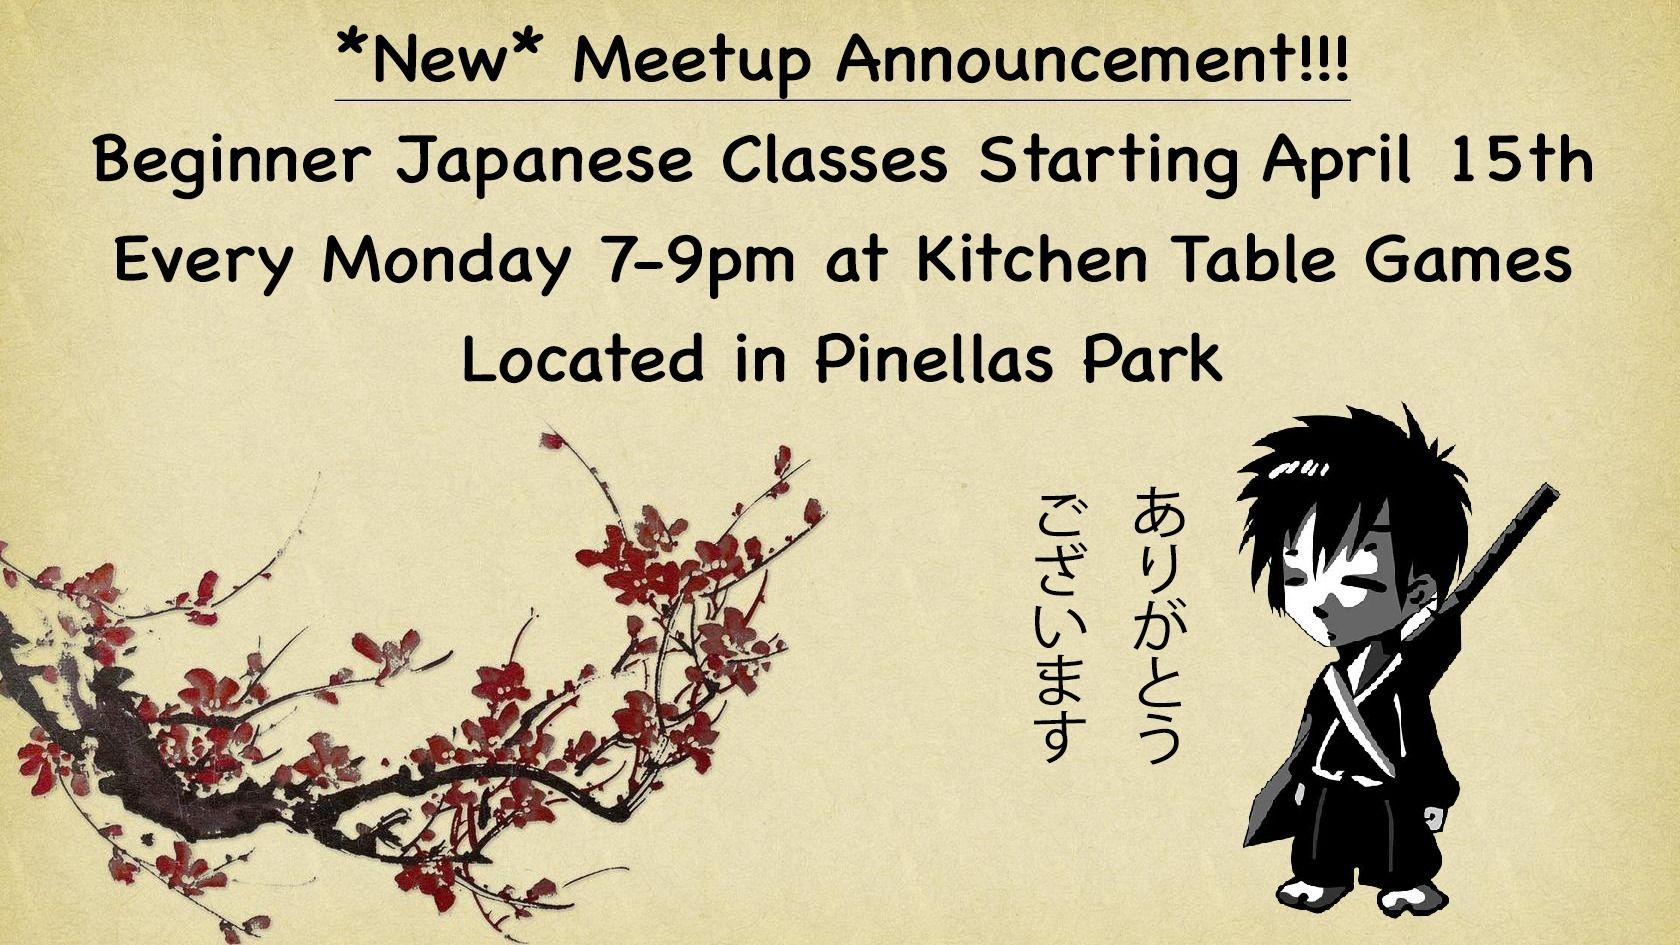 Tampa Bay Japanese Language Classes